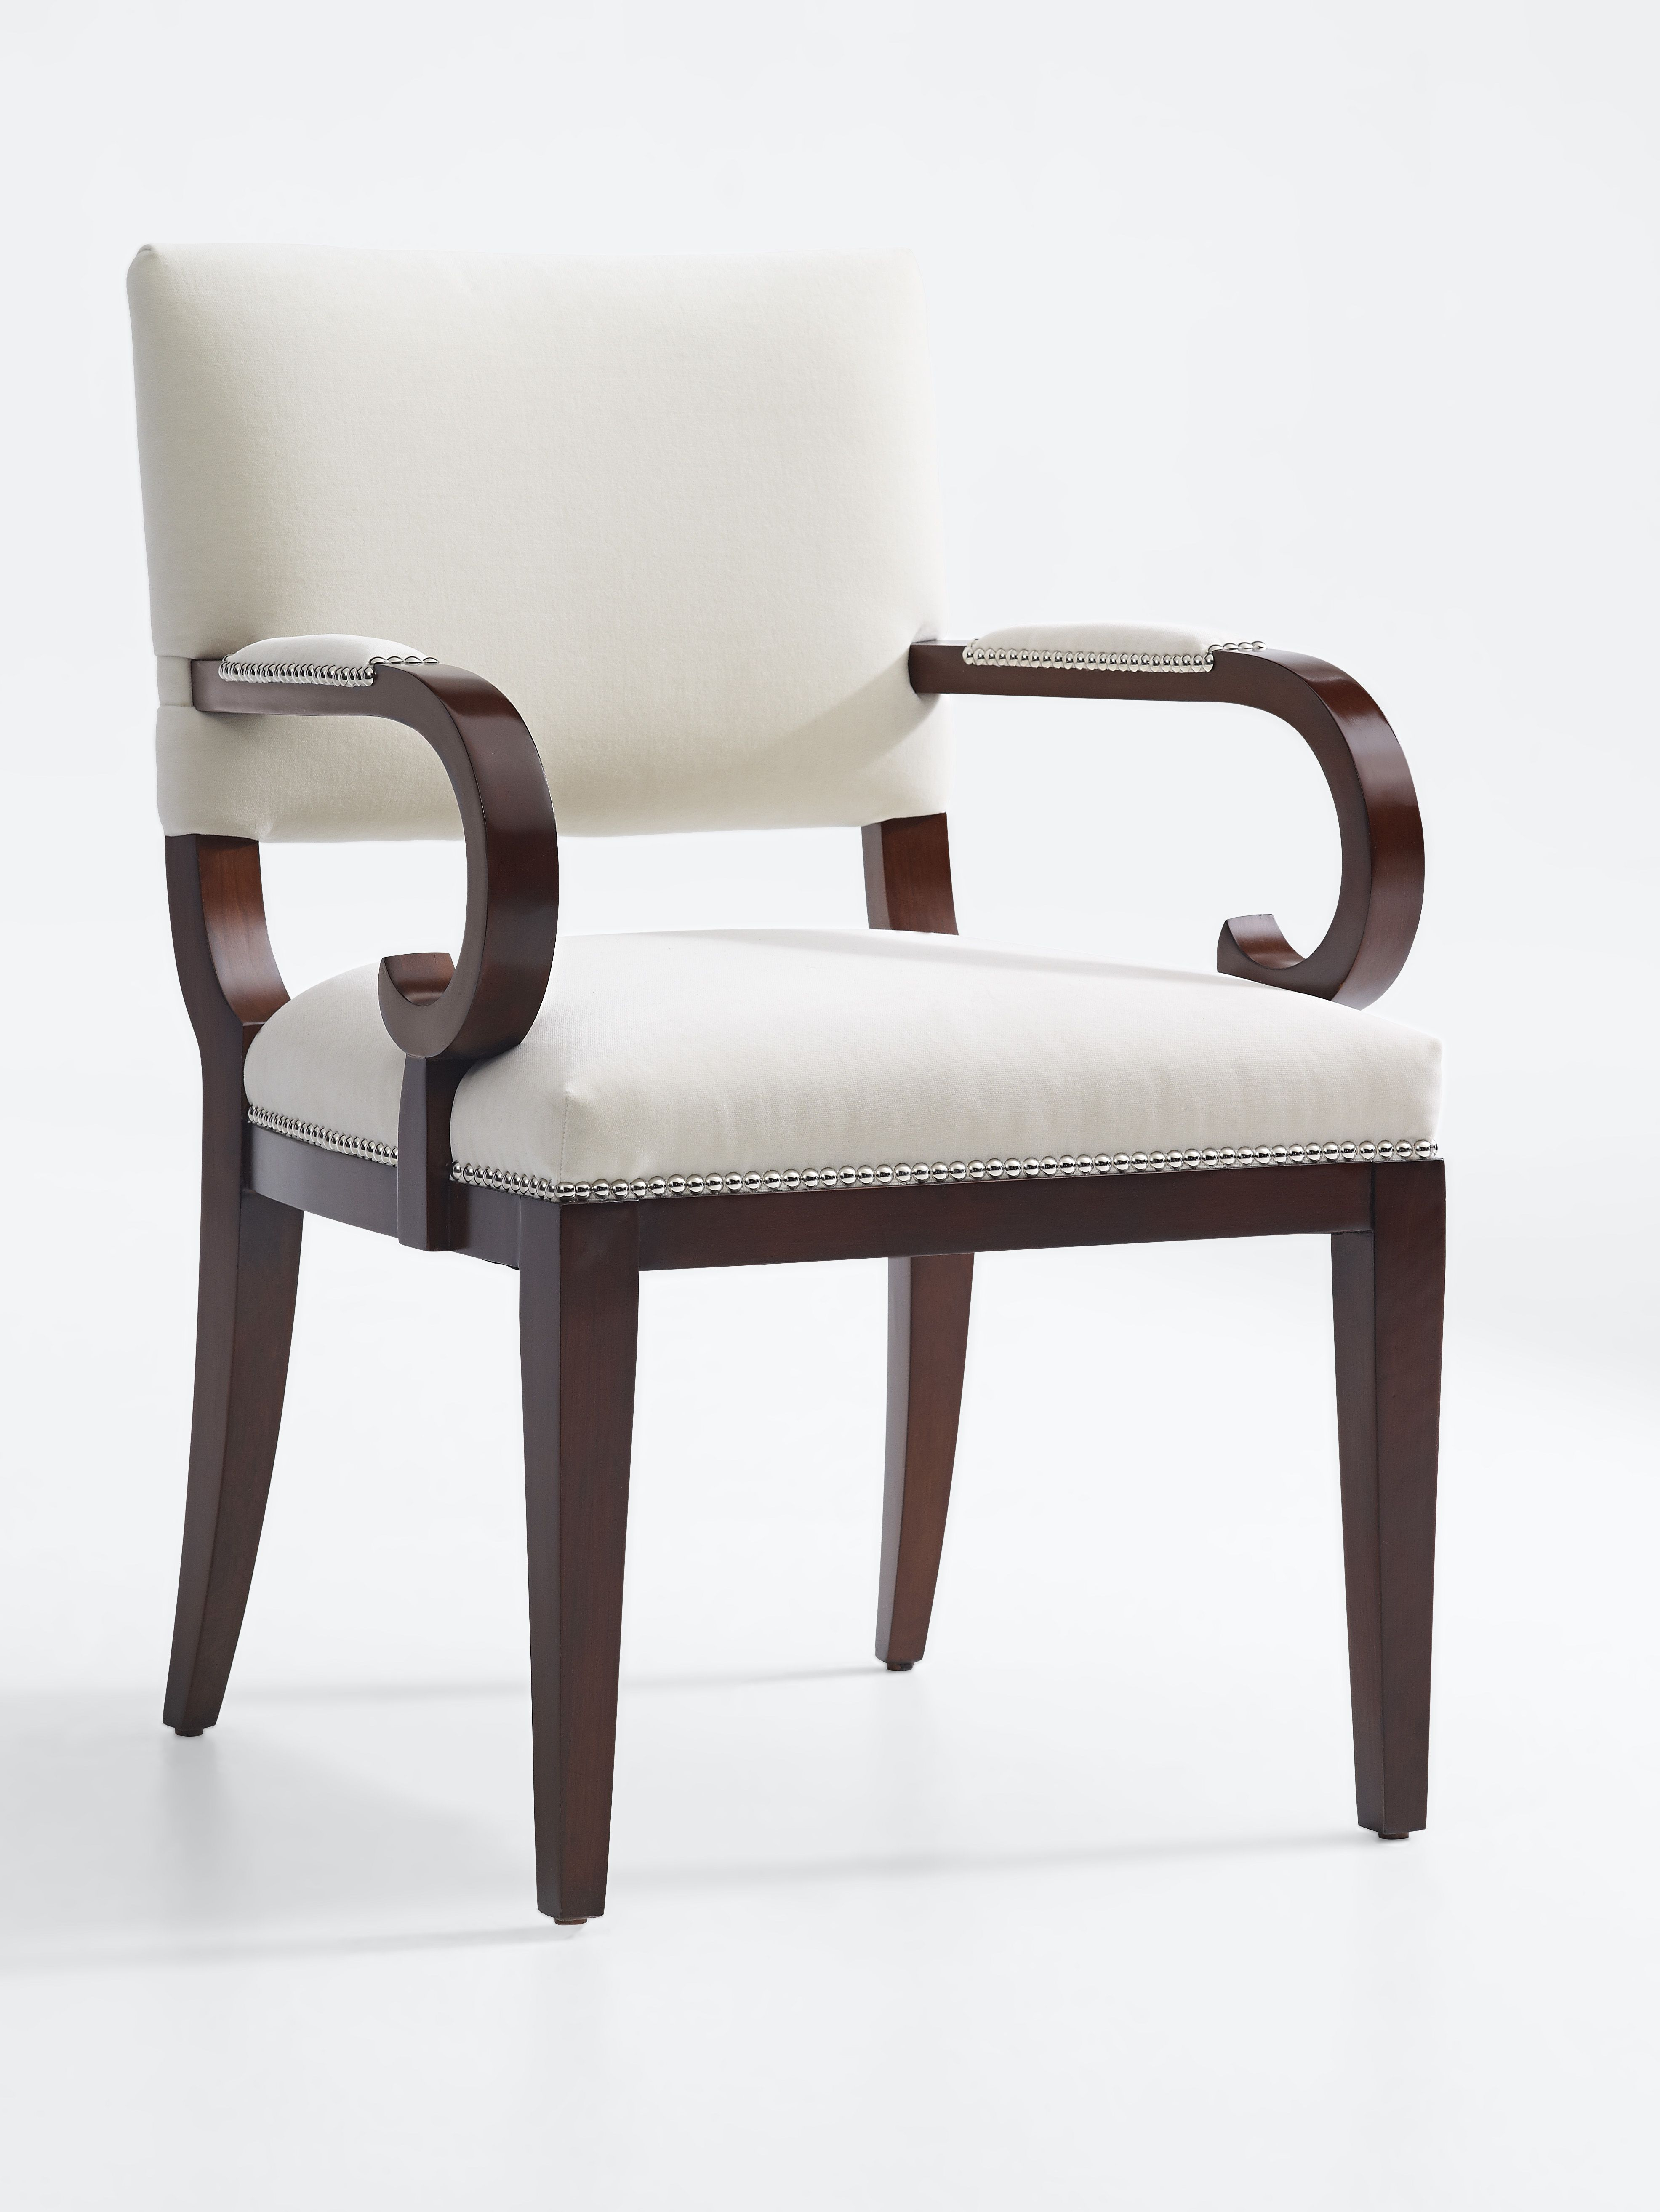 Ralph Lauren Home's Mayfair Dining Arm Chair | 【單椅】 | Pinterest Throughout Tate Arm Sofa Chairs (Image 15 of 25)